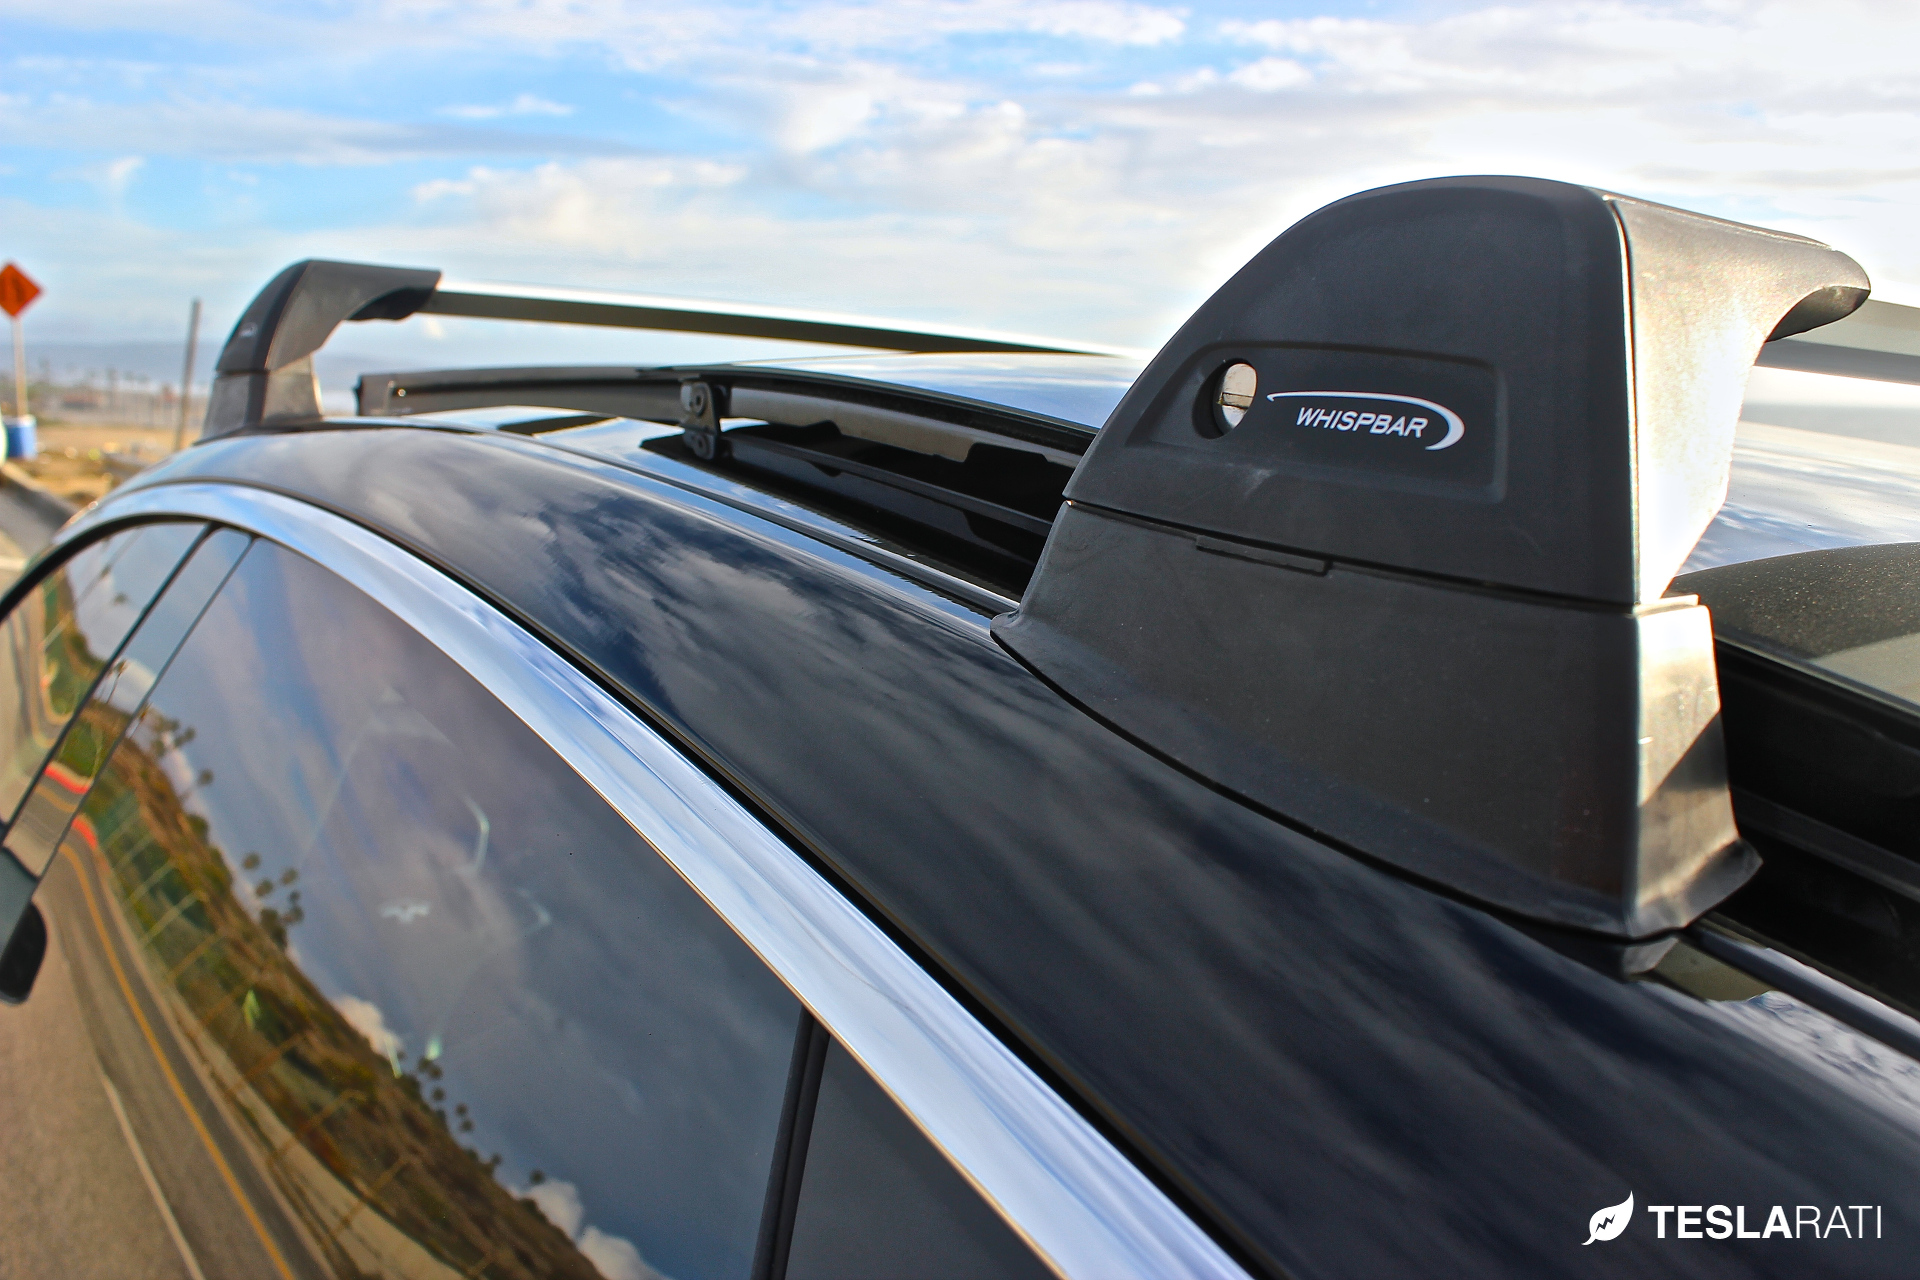 Tesla-Model-S-Whispbar-Roof-Rack-Pano-Clearance